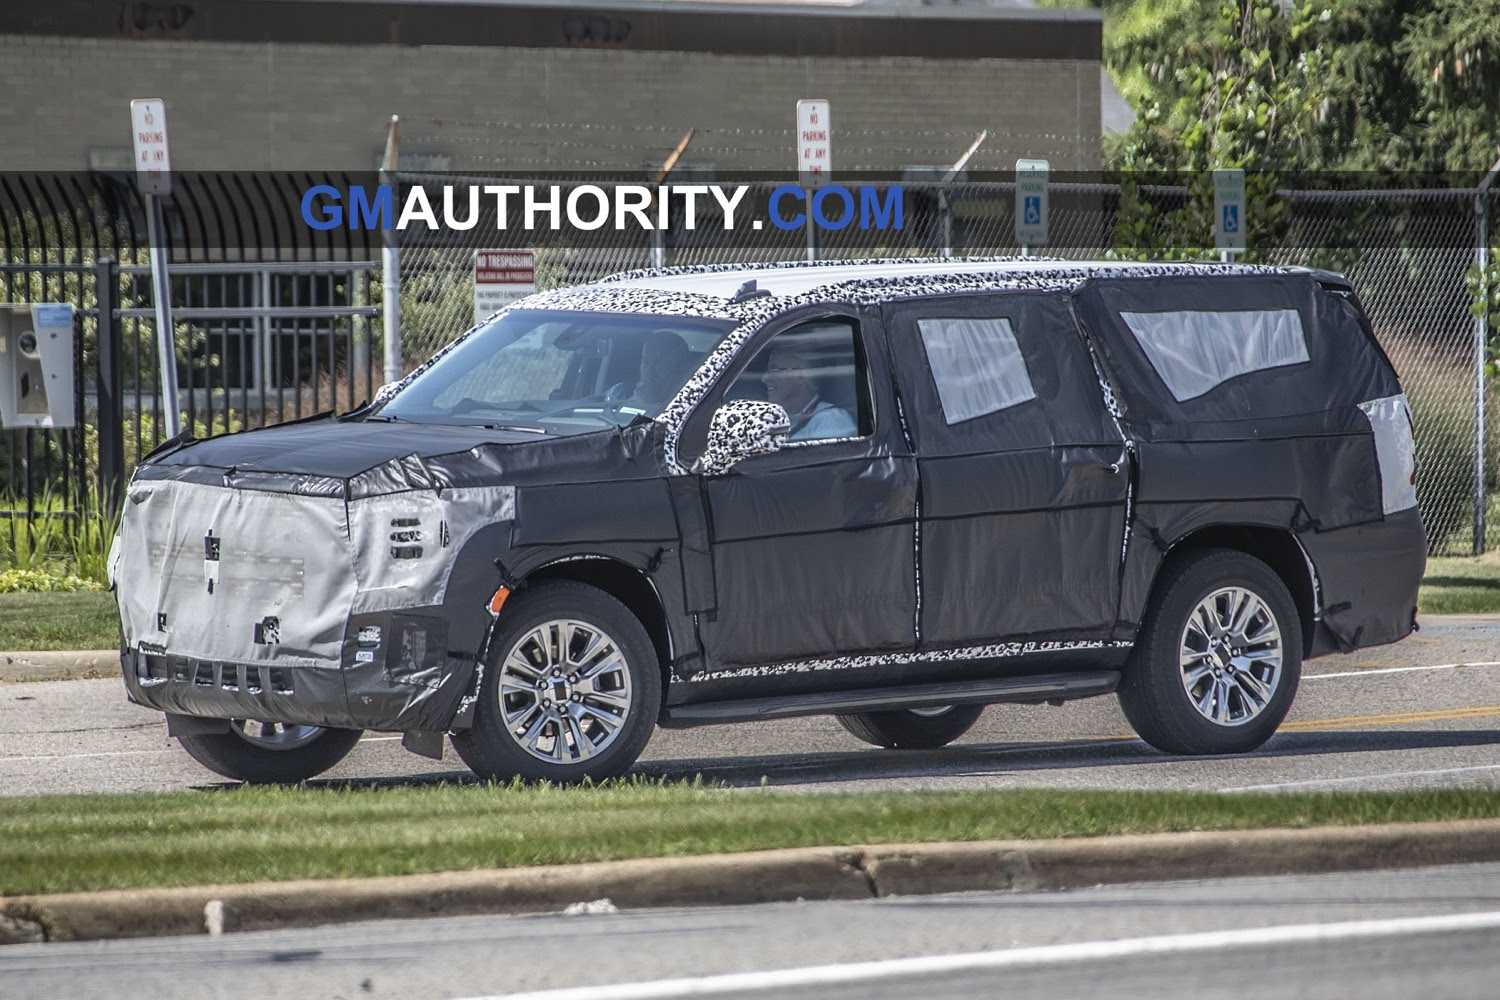 2021 gmc yukon spied with productionintent headlamps  gm